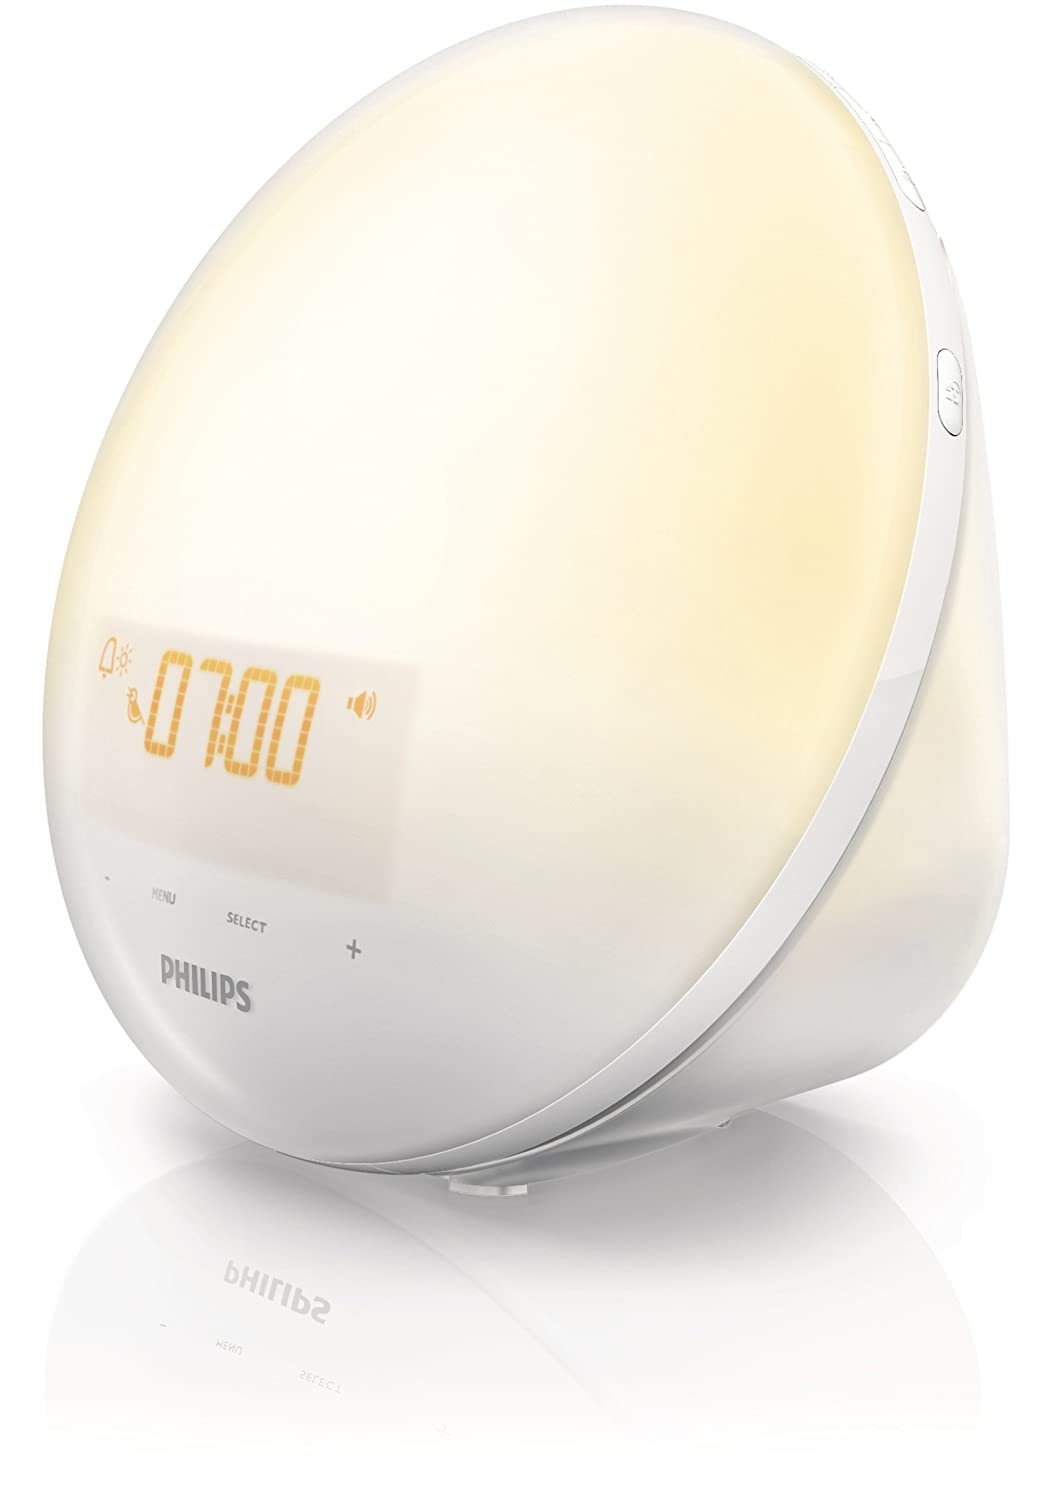 Philips HF3510 Wake-Up Light, White 	$59.99